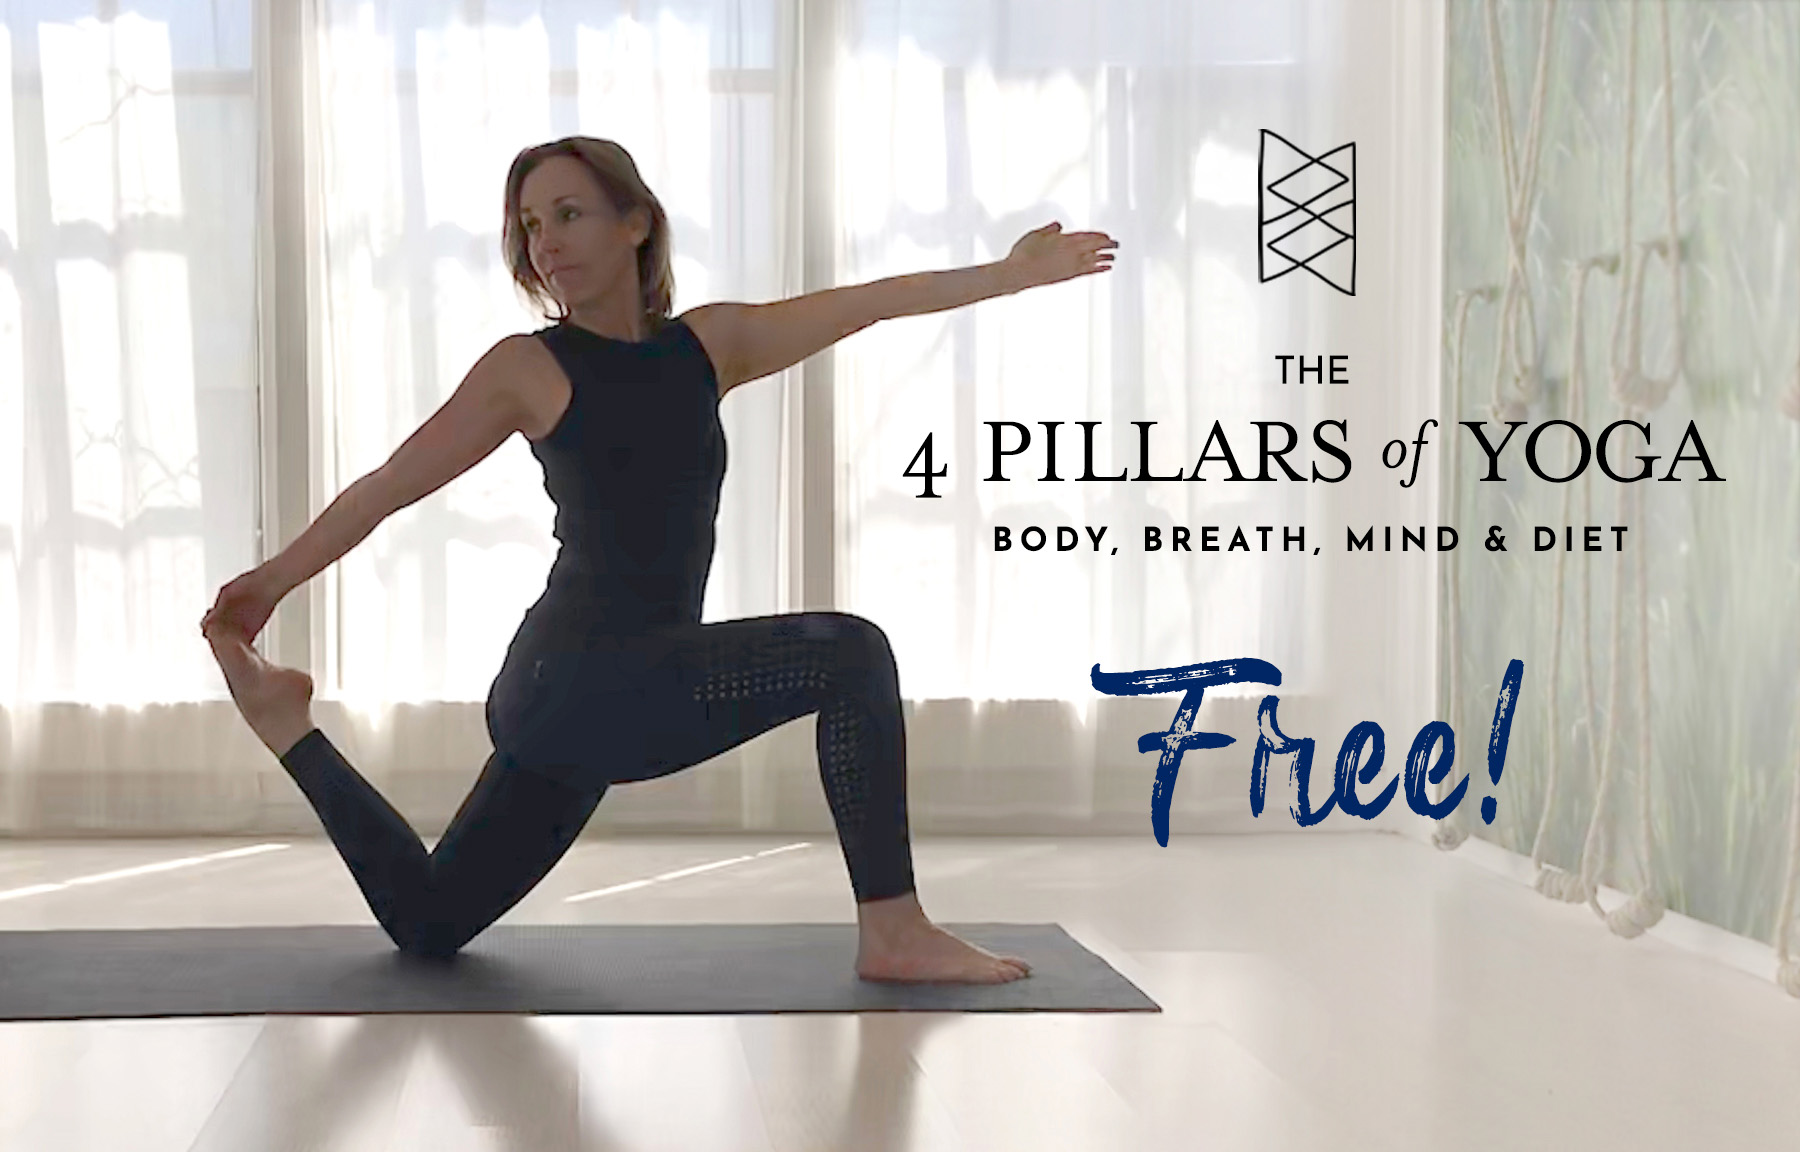 The 4 Pillars of Yoga: Body, Breath, Mind & Diet - Free!